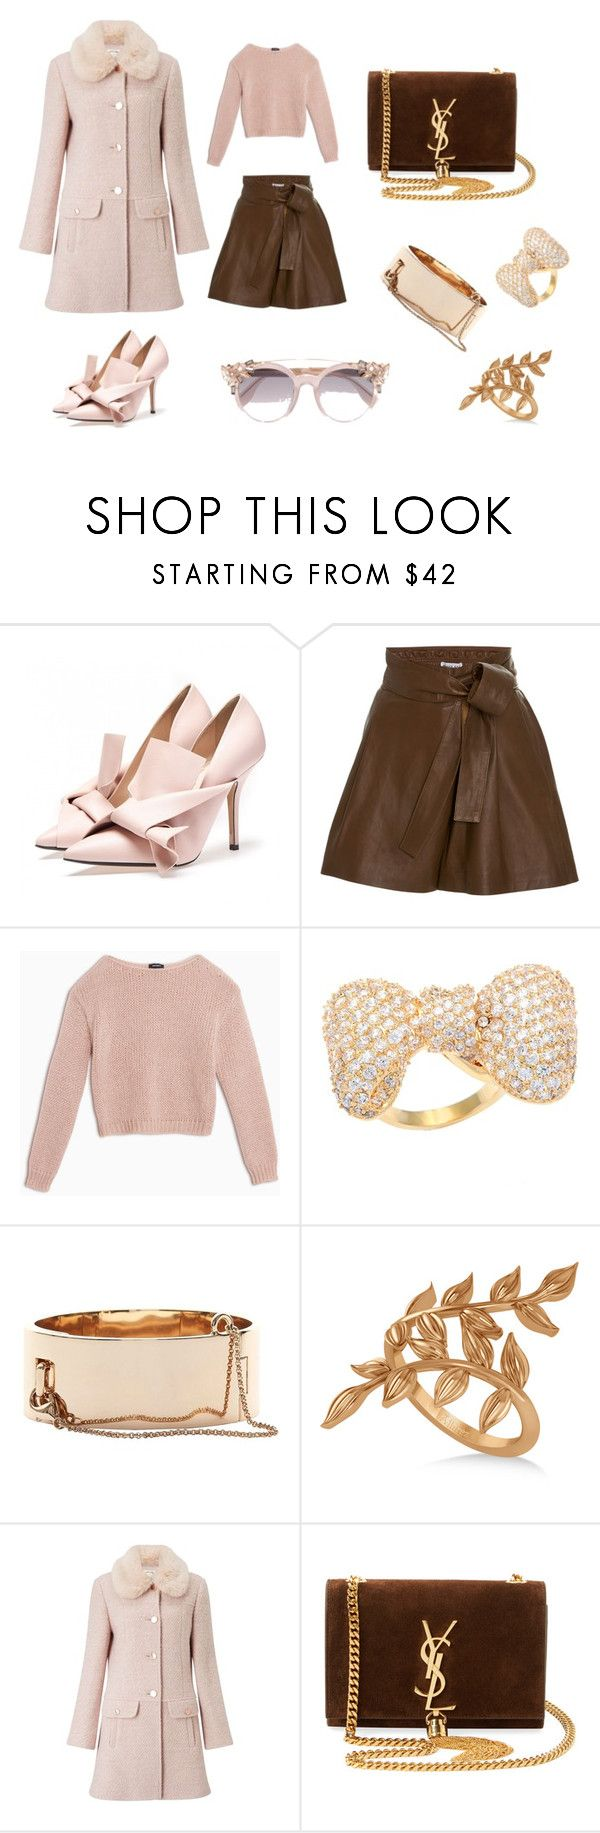 MARY ROSE by DAMIANI LAURA on Polyvore featuring moda, Max&Co., Miss Selfridge, Apiece Apart, Yves Saint Laurent, Allurez, Eddie Borgo, Kate Bissett and Jimmy Choo